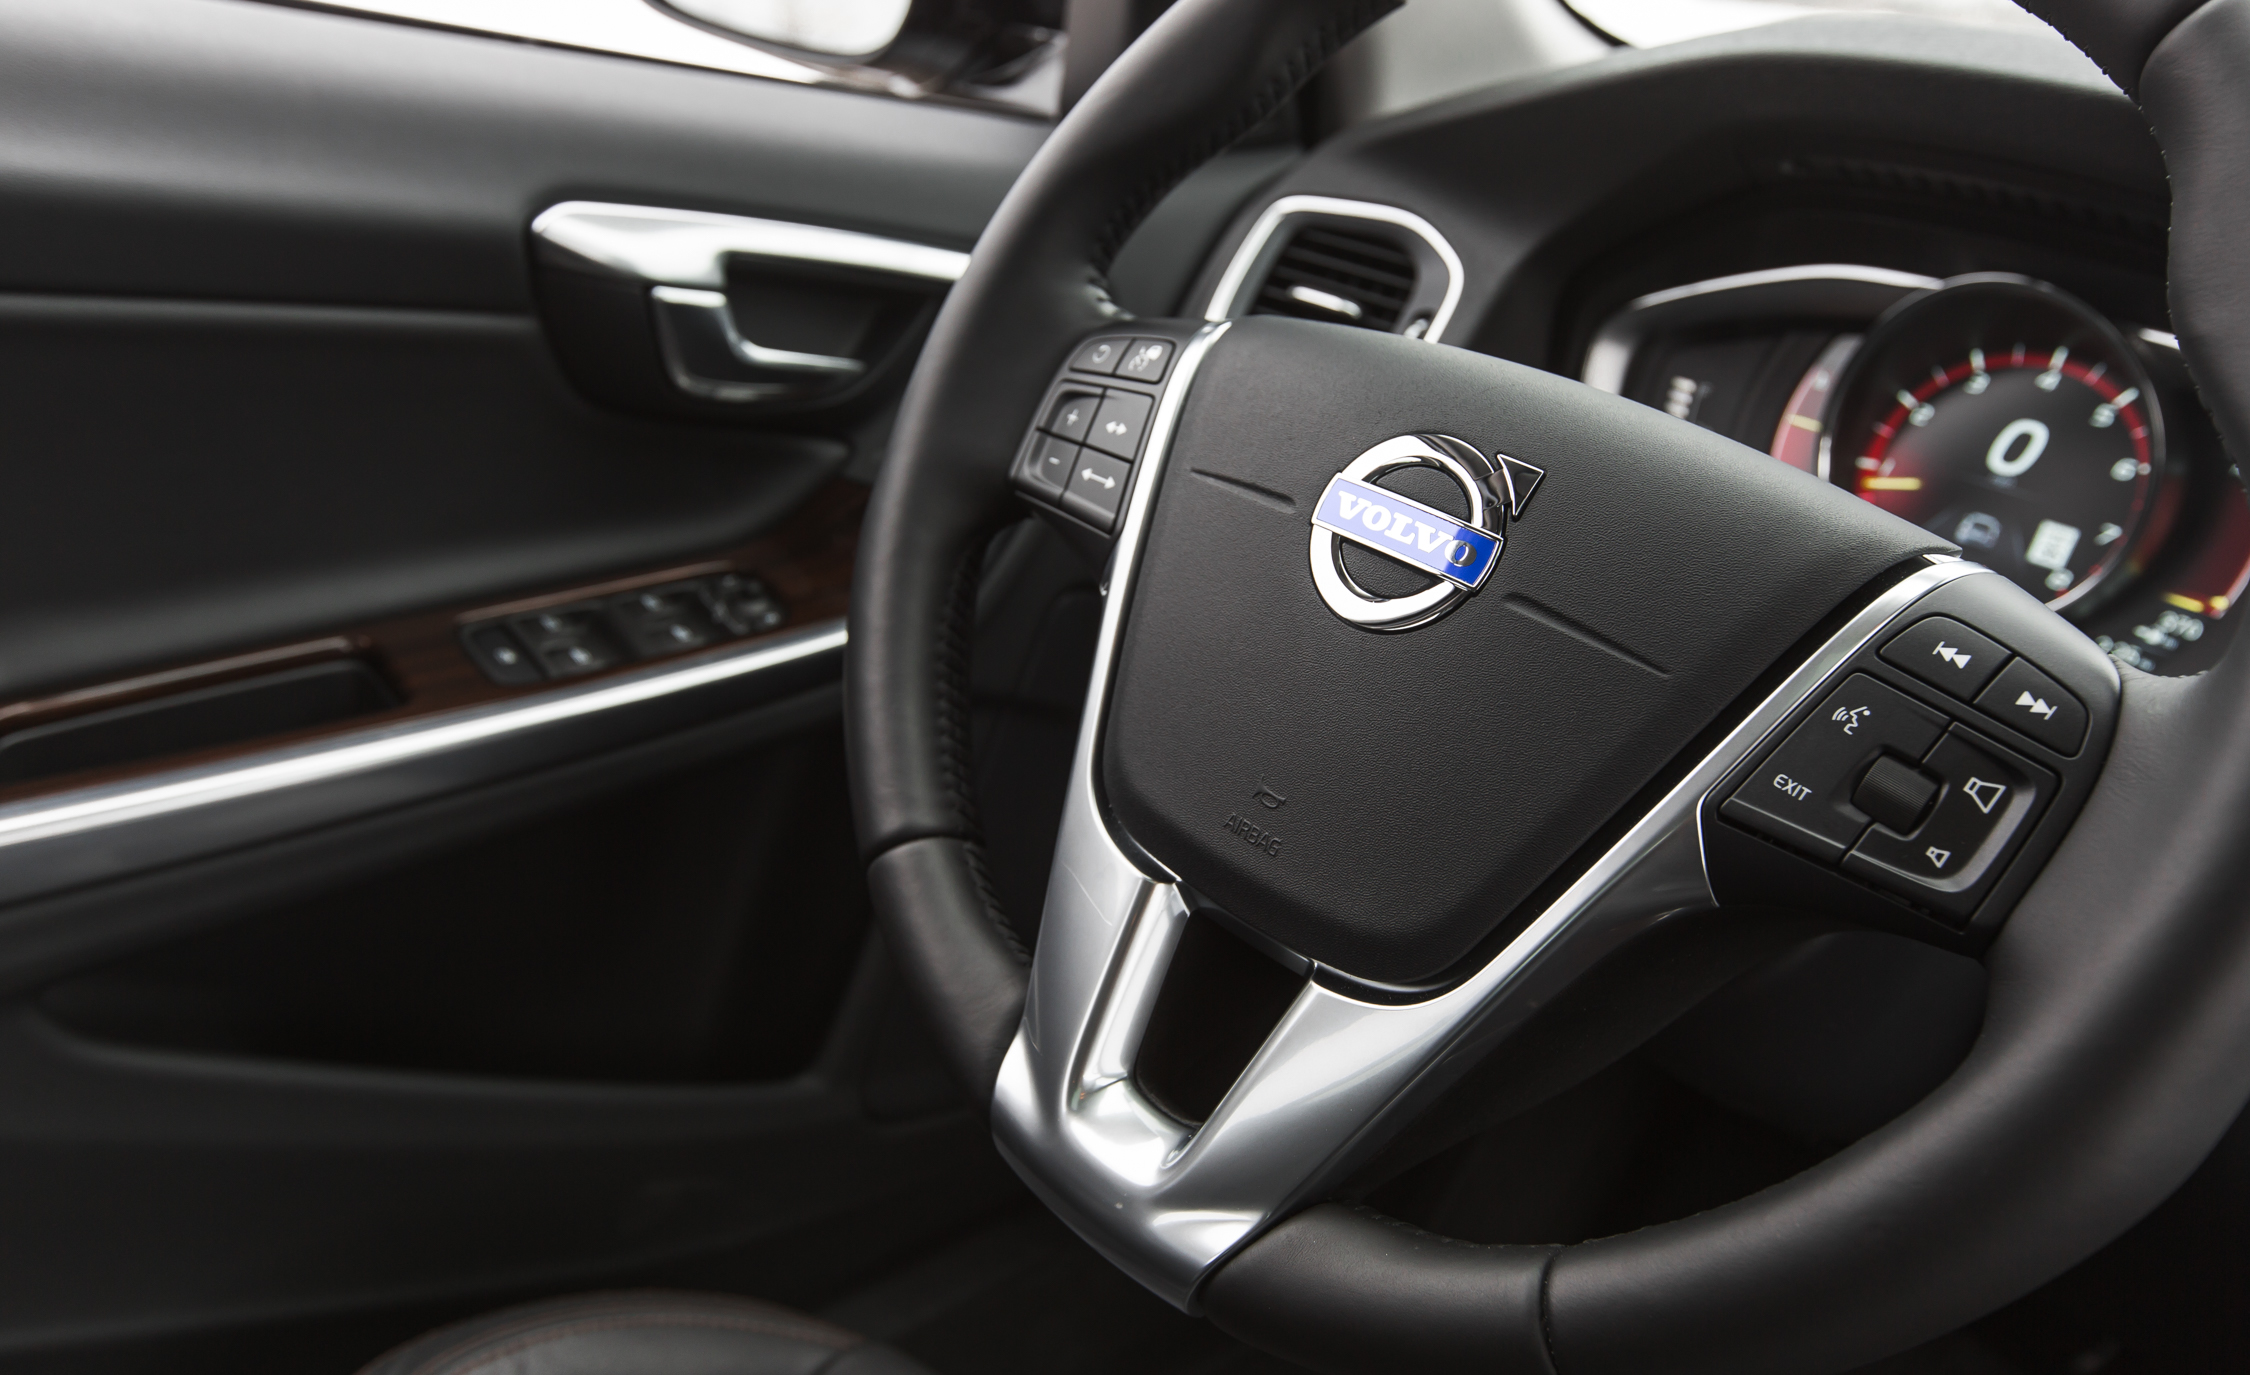 2016 Volvo S60 Cross Country Interior Steering (Photo 21 of 21)